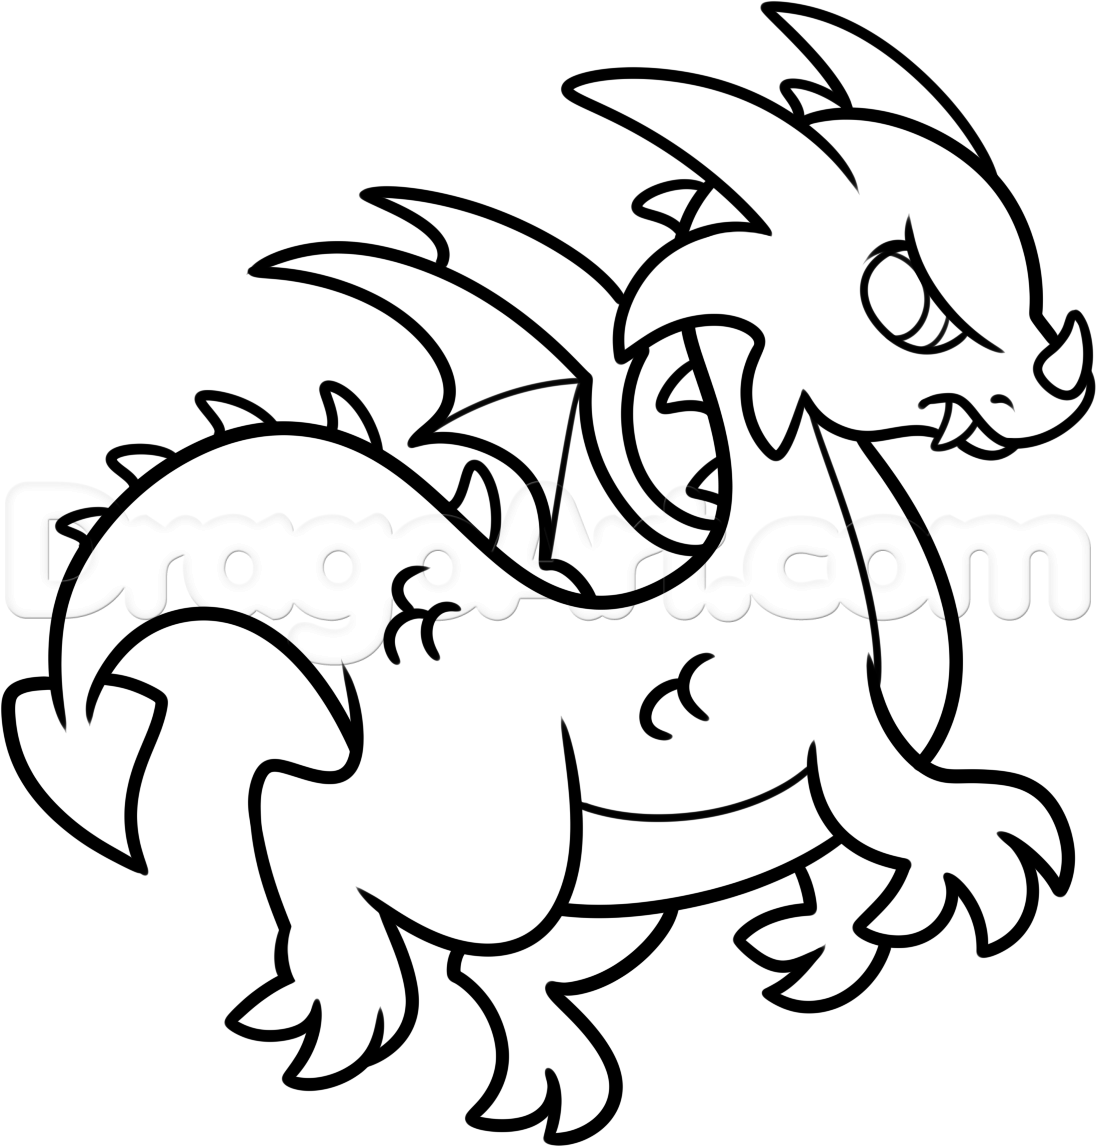 How To Draw A Simple Dragon Step 8 In 2019 Cartoon Dragon